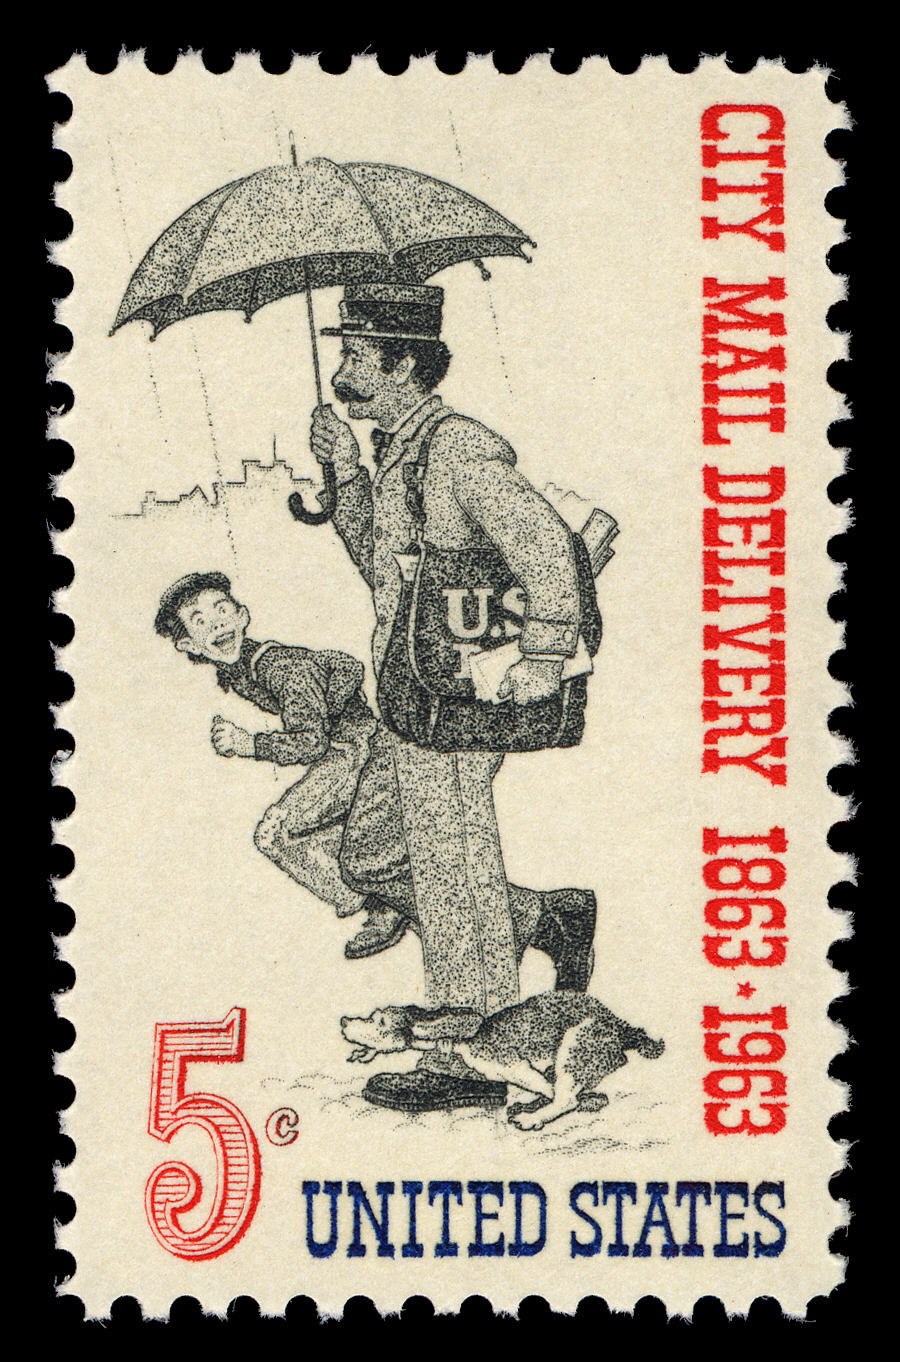 Postage stamp with illustration of mail carrier holding an umbrella and bag of mail. A young boy and a small dog run alongside him. It is raining.